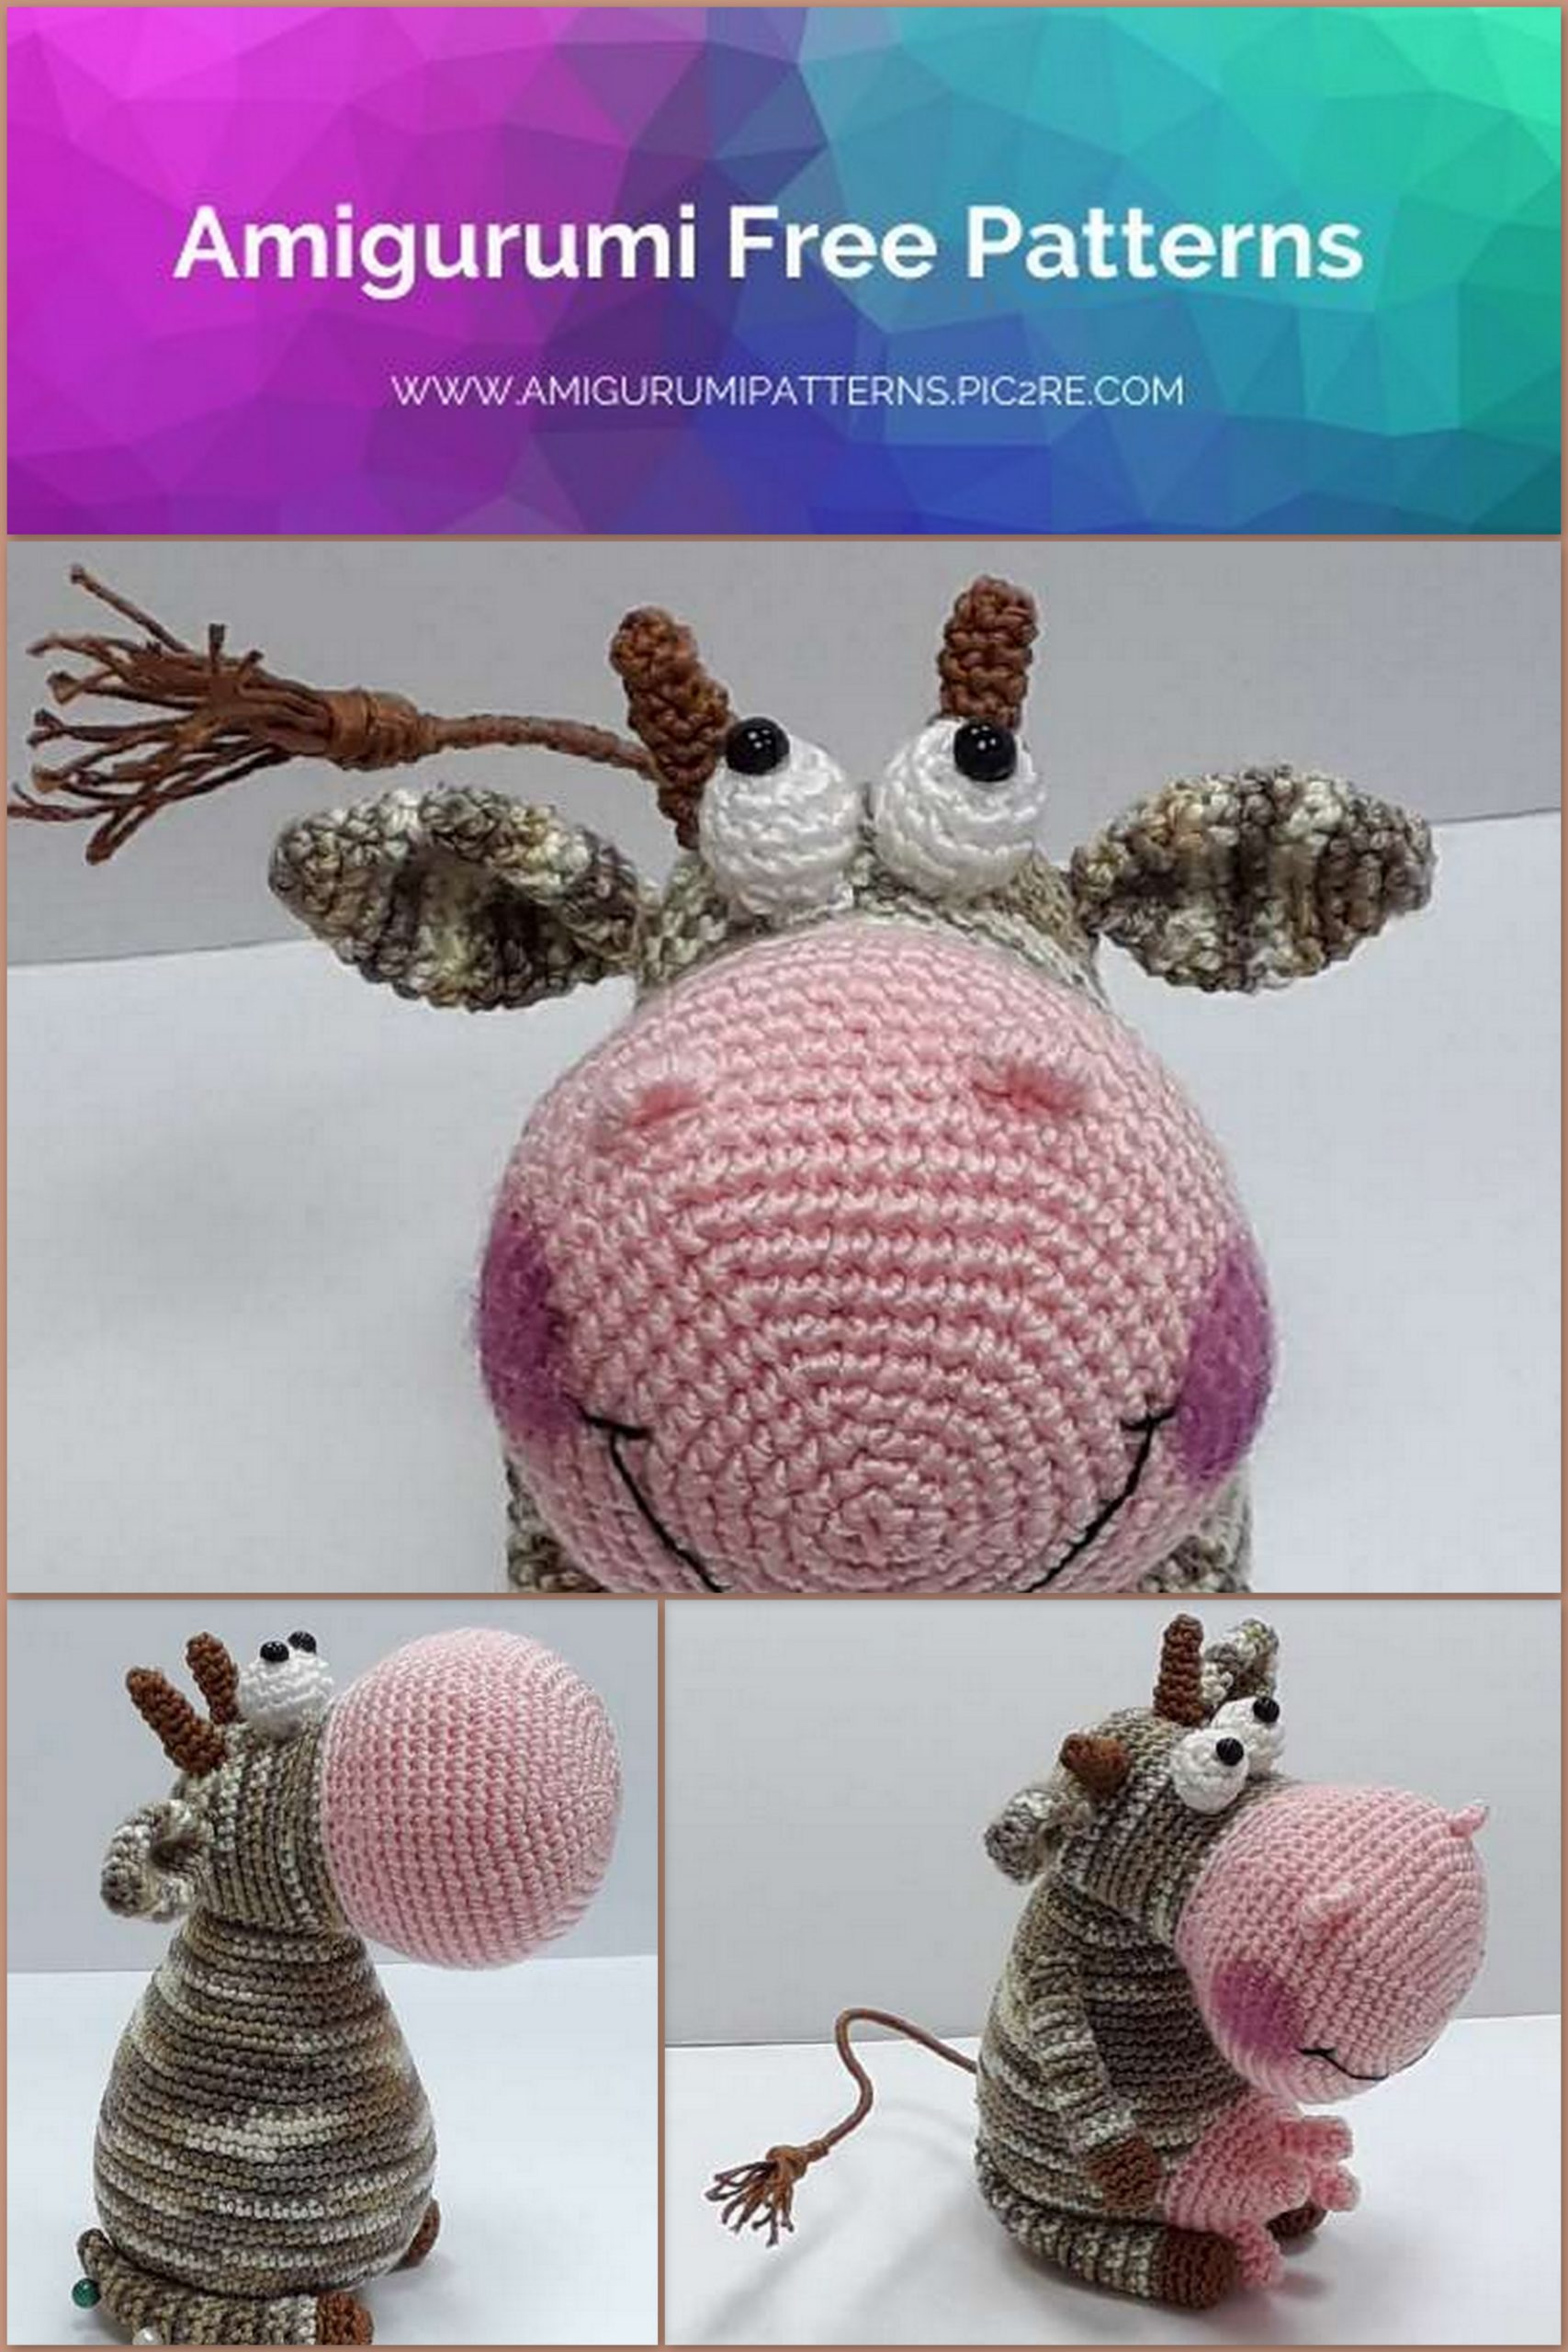 6 Super Cute Crocheted Amigurumi Cow Free Patterns - DIY 4 EVER | 2560x1707